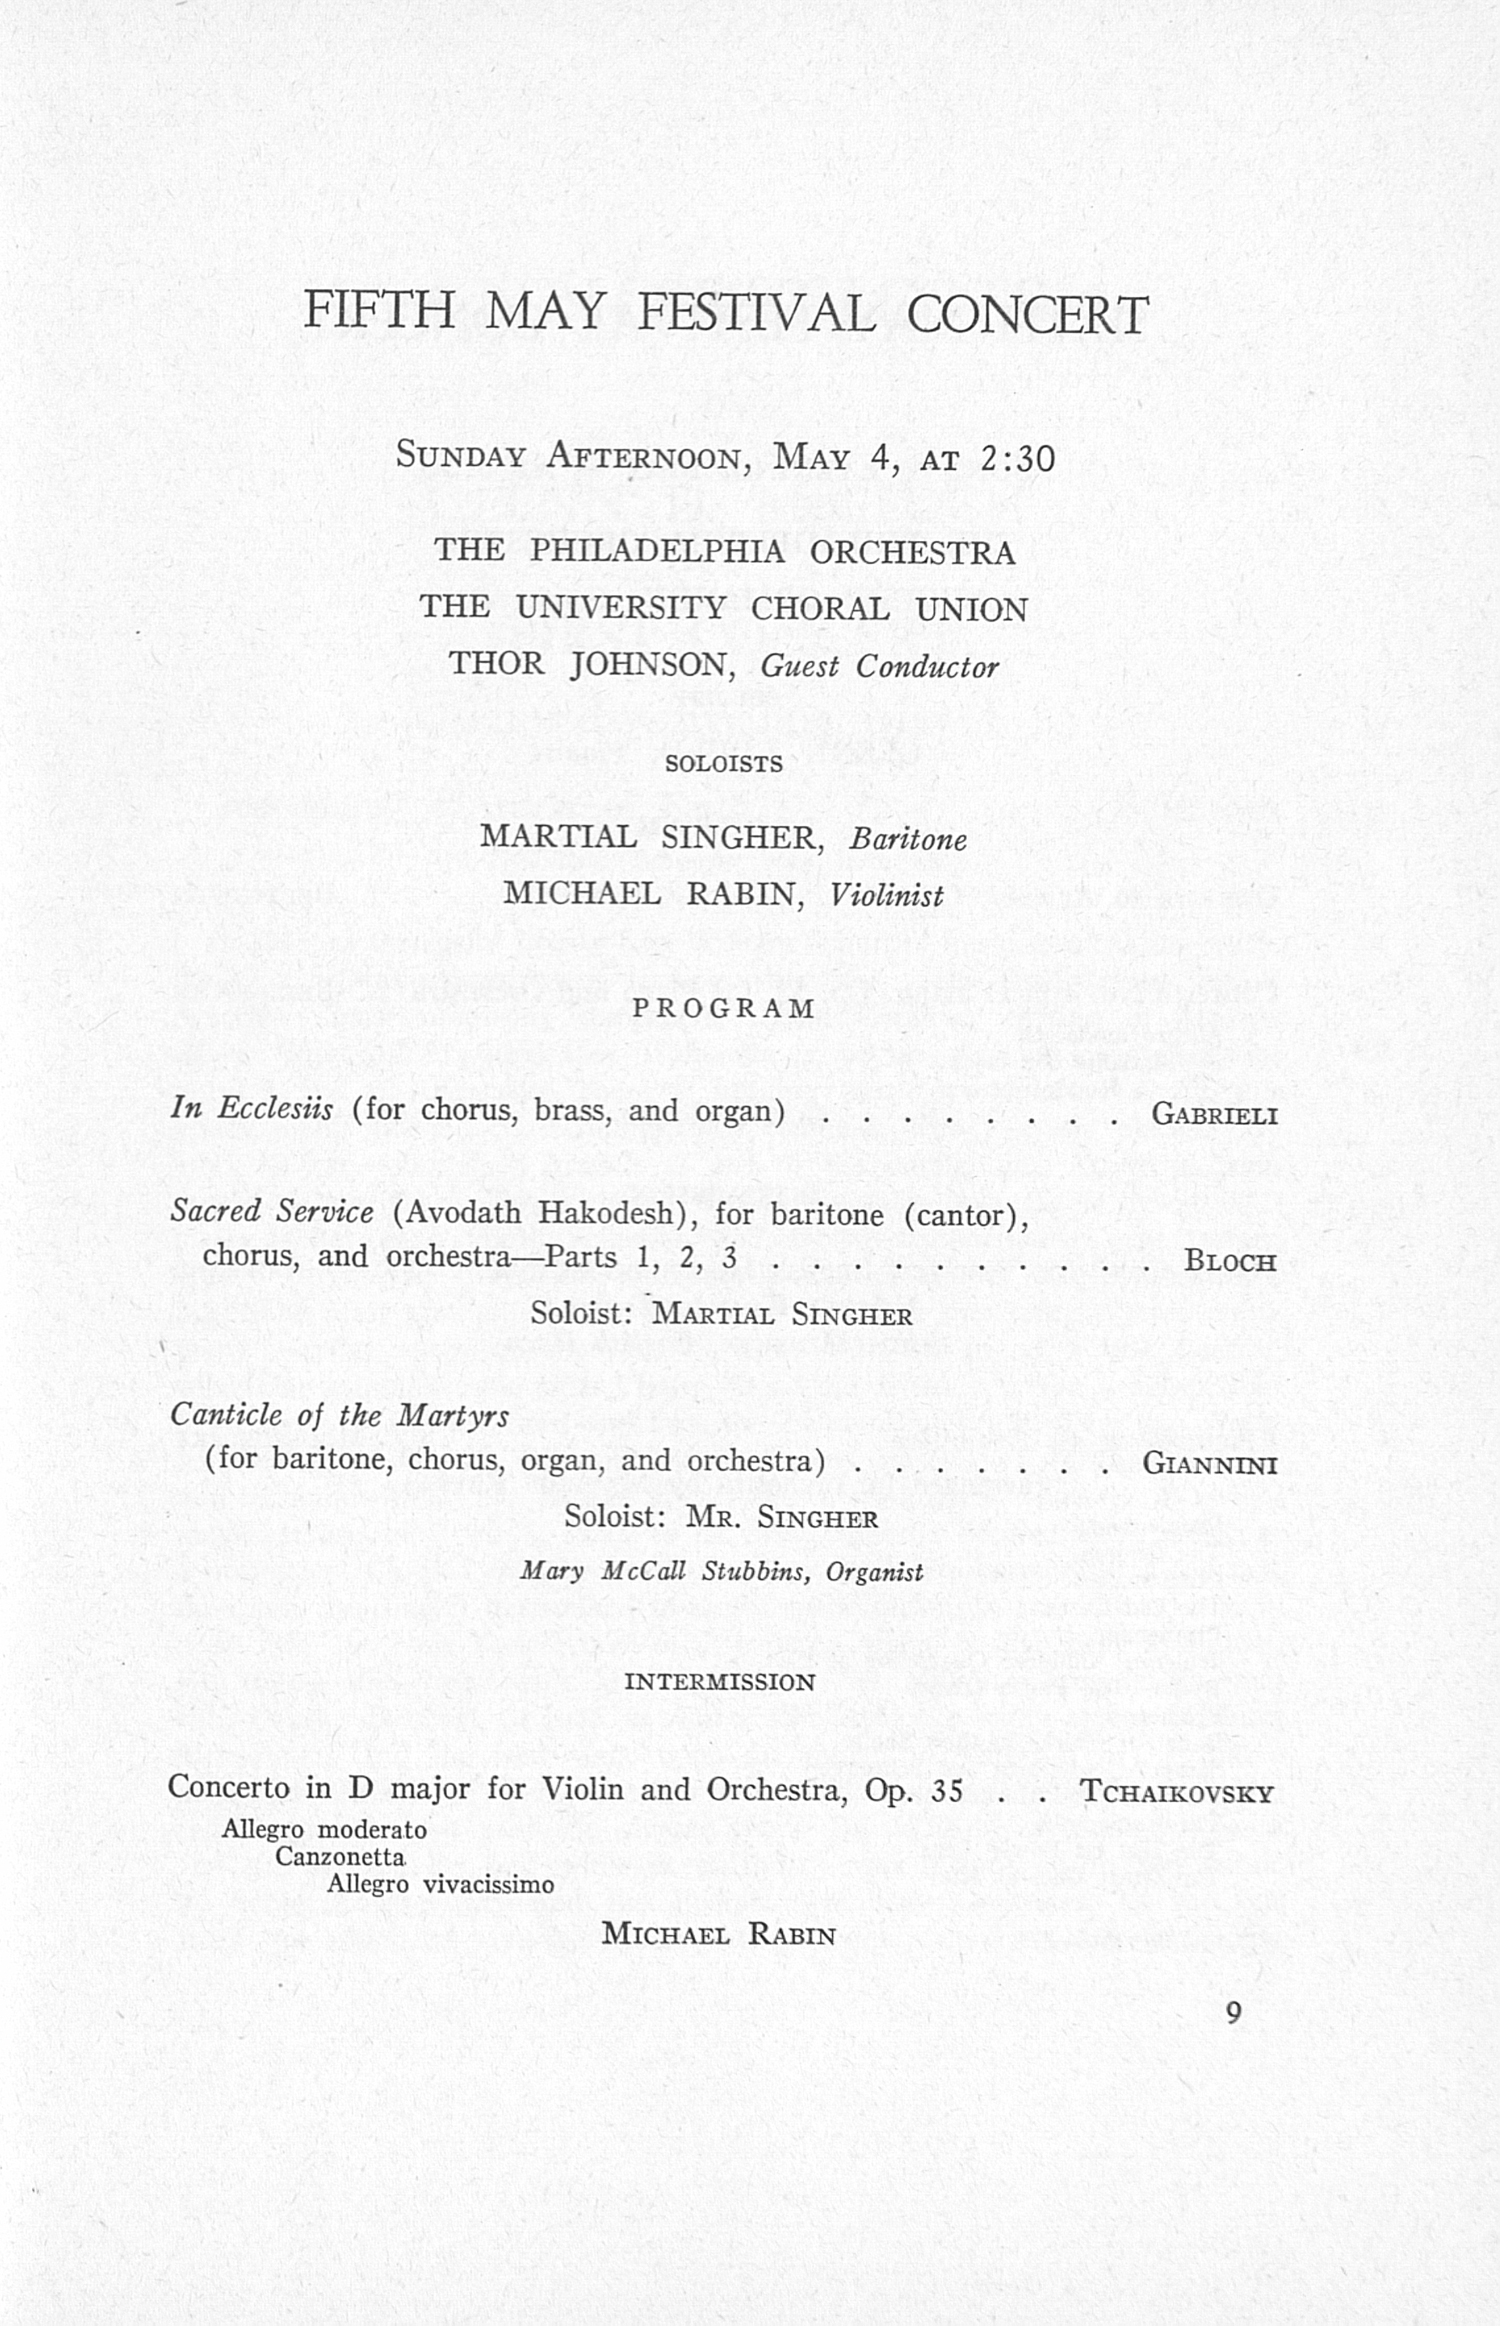 UMS Concert Program, May 1, 2, 3, 4, 1958: The Sixty-fifth Annual Ann Arbor May Festival -- The Philadelphia Orchestra image